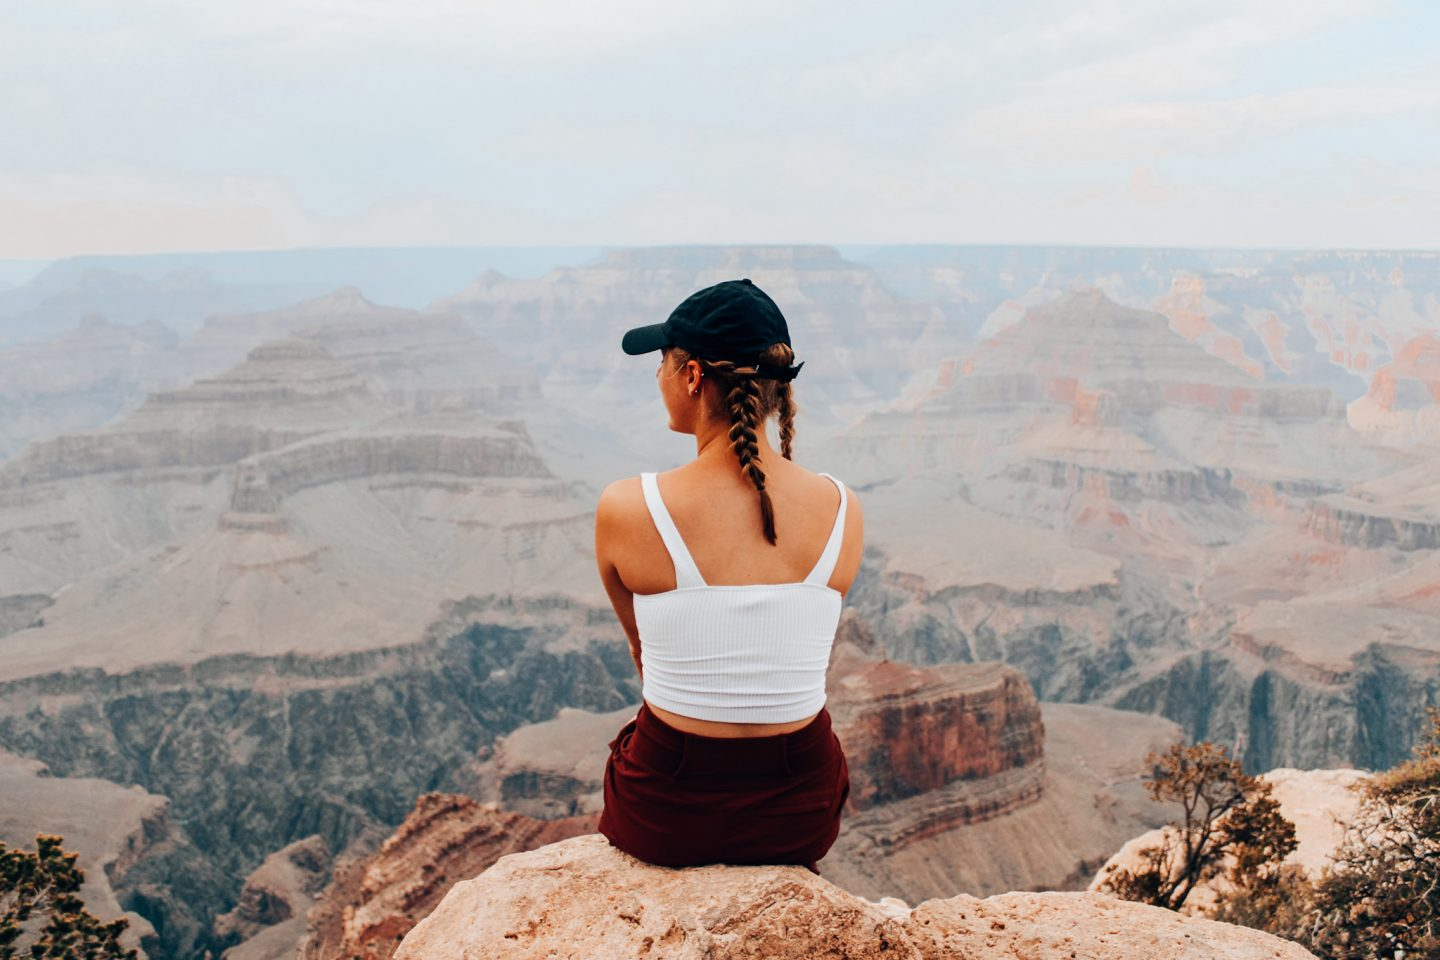 Visiting the South Rim of the Grand Canyon